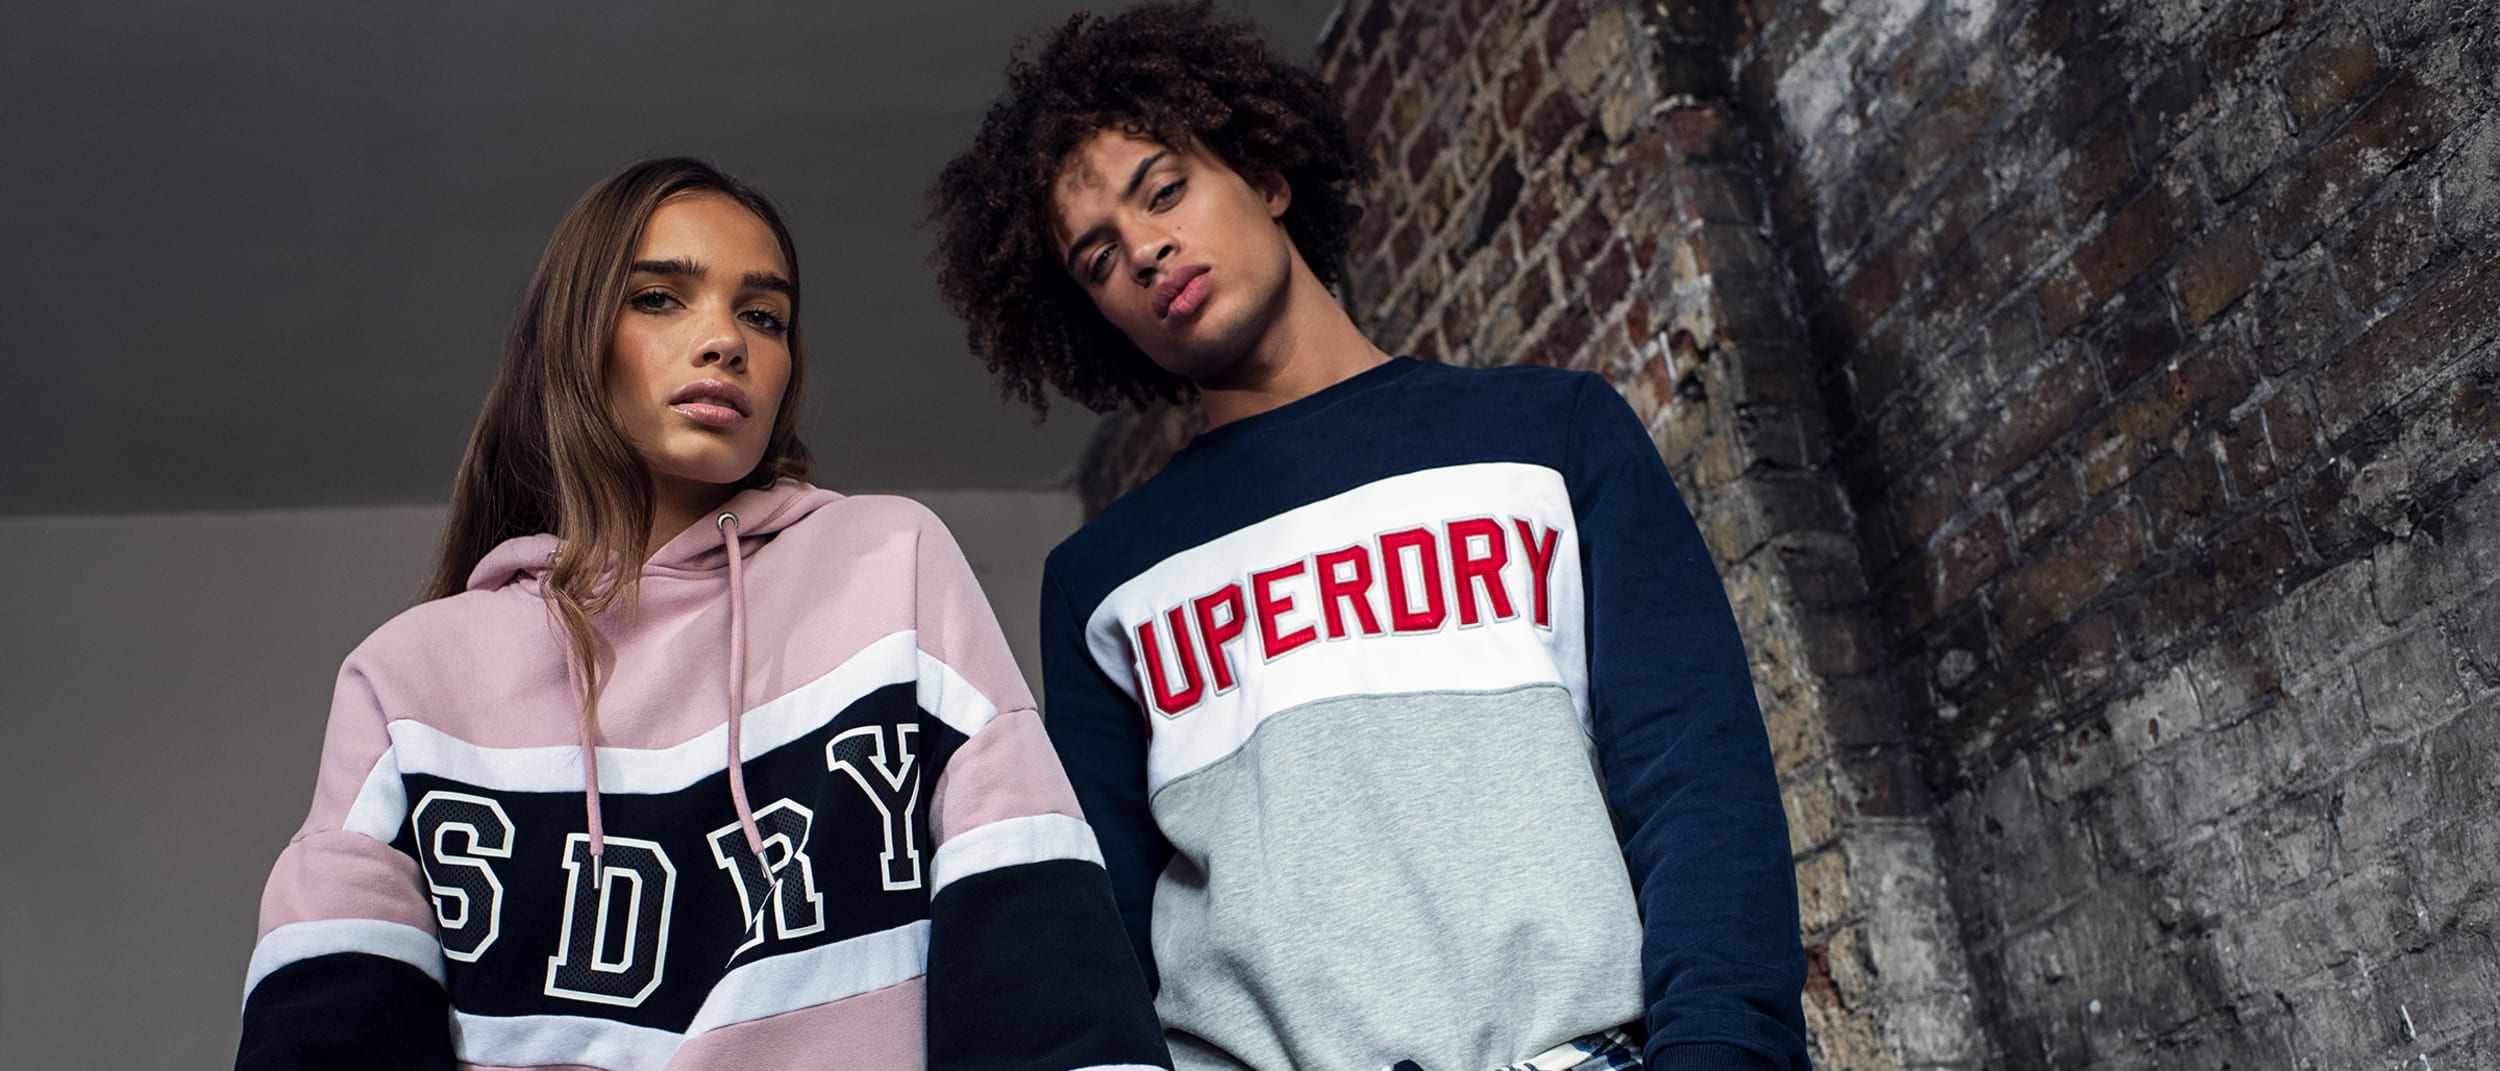 Superdry: Up to 50% OFF!